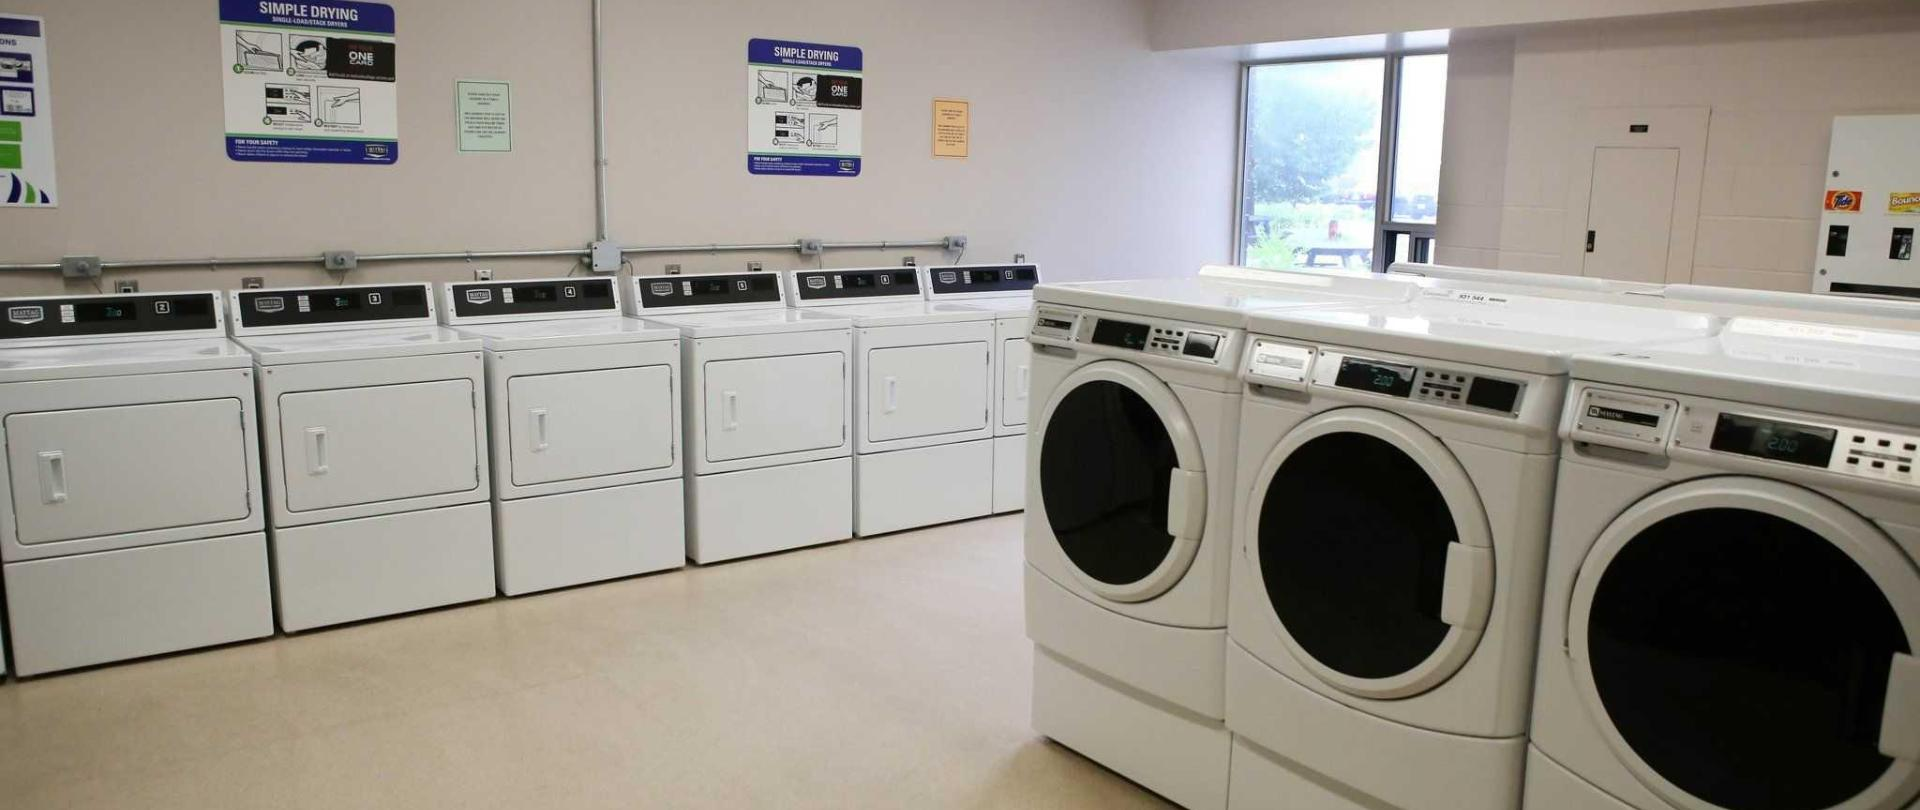 laundry-facilities-first-floor.jpg